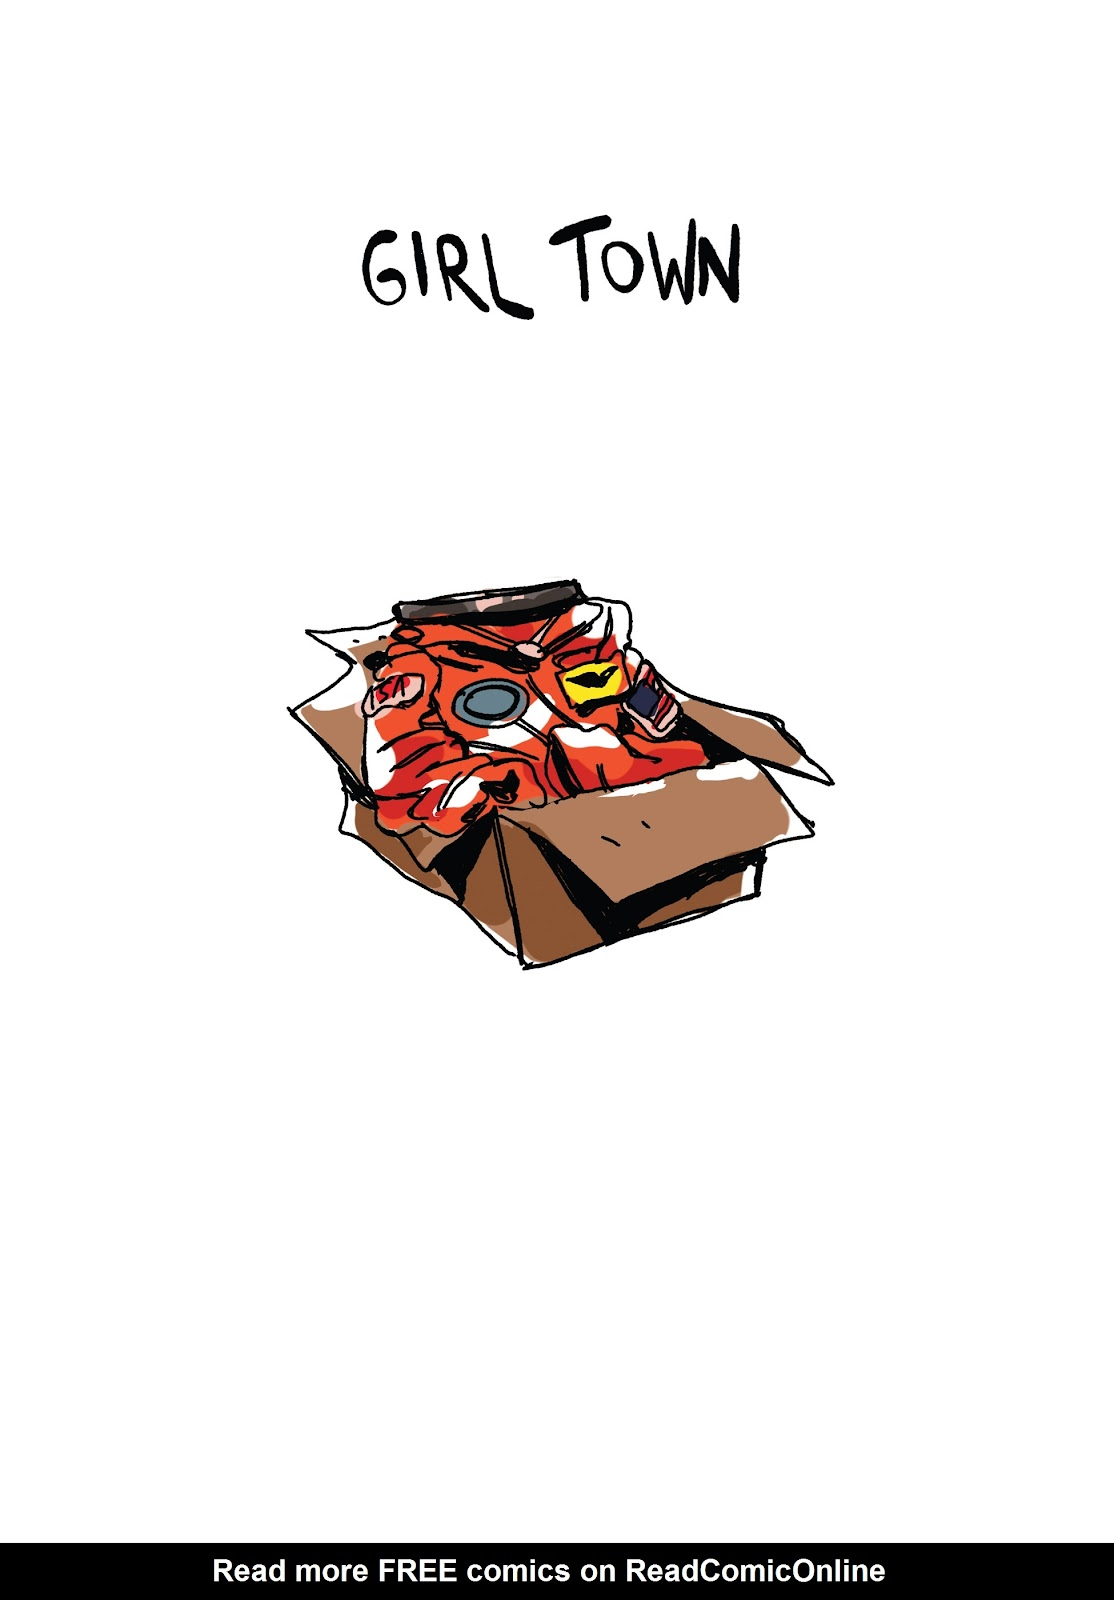 Read online Girl Town comic -  Issue # TPB (Part 1) - 10